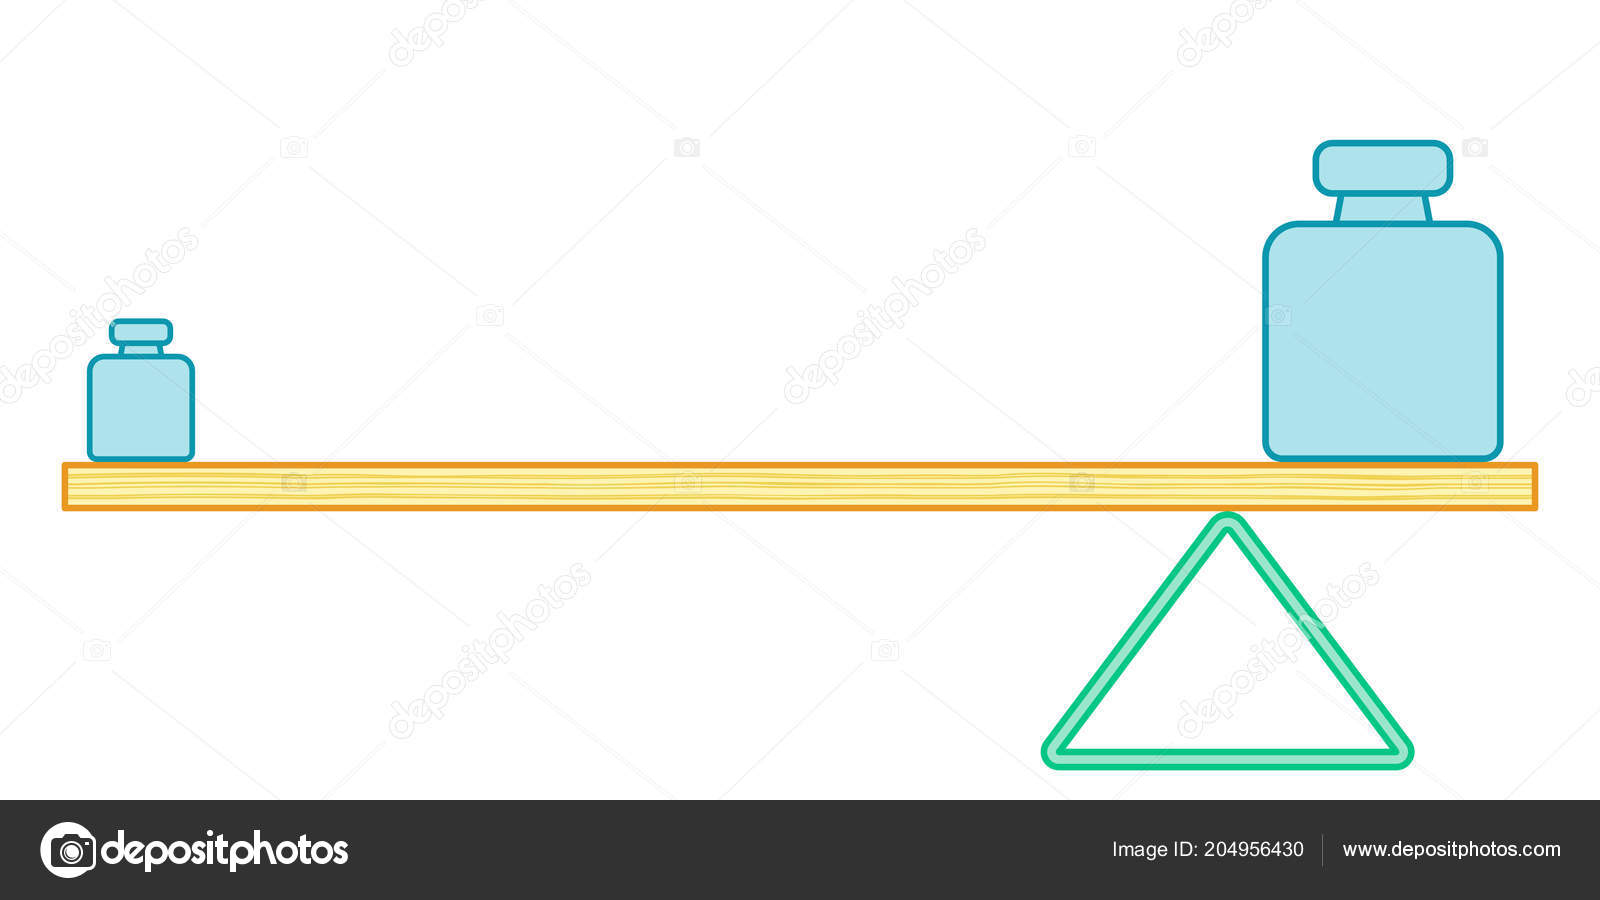 Illustration Of The Simple Lever Balance Vector By AlexanderZam